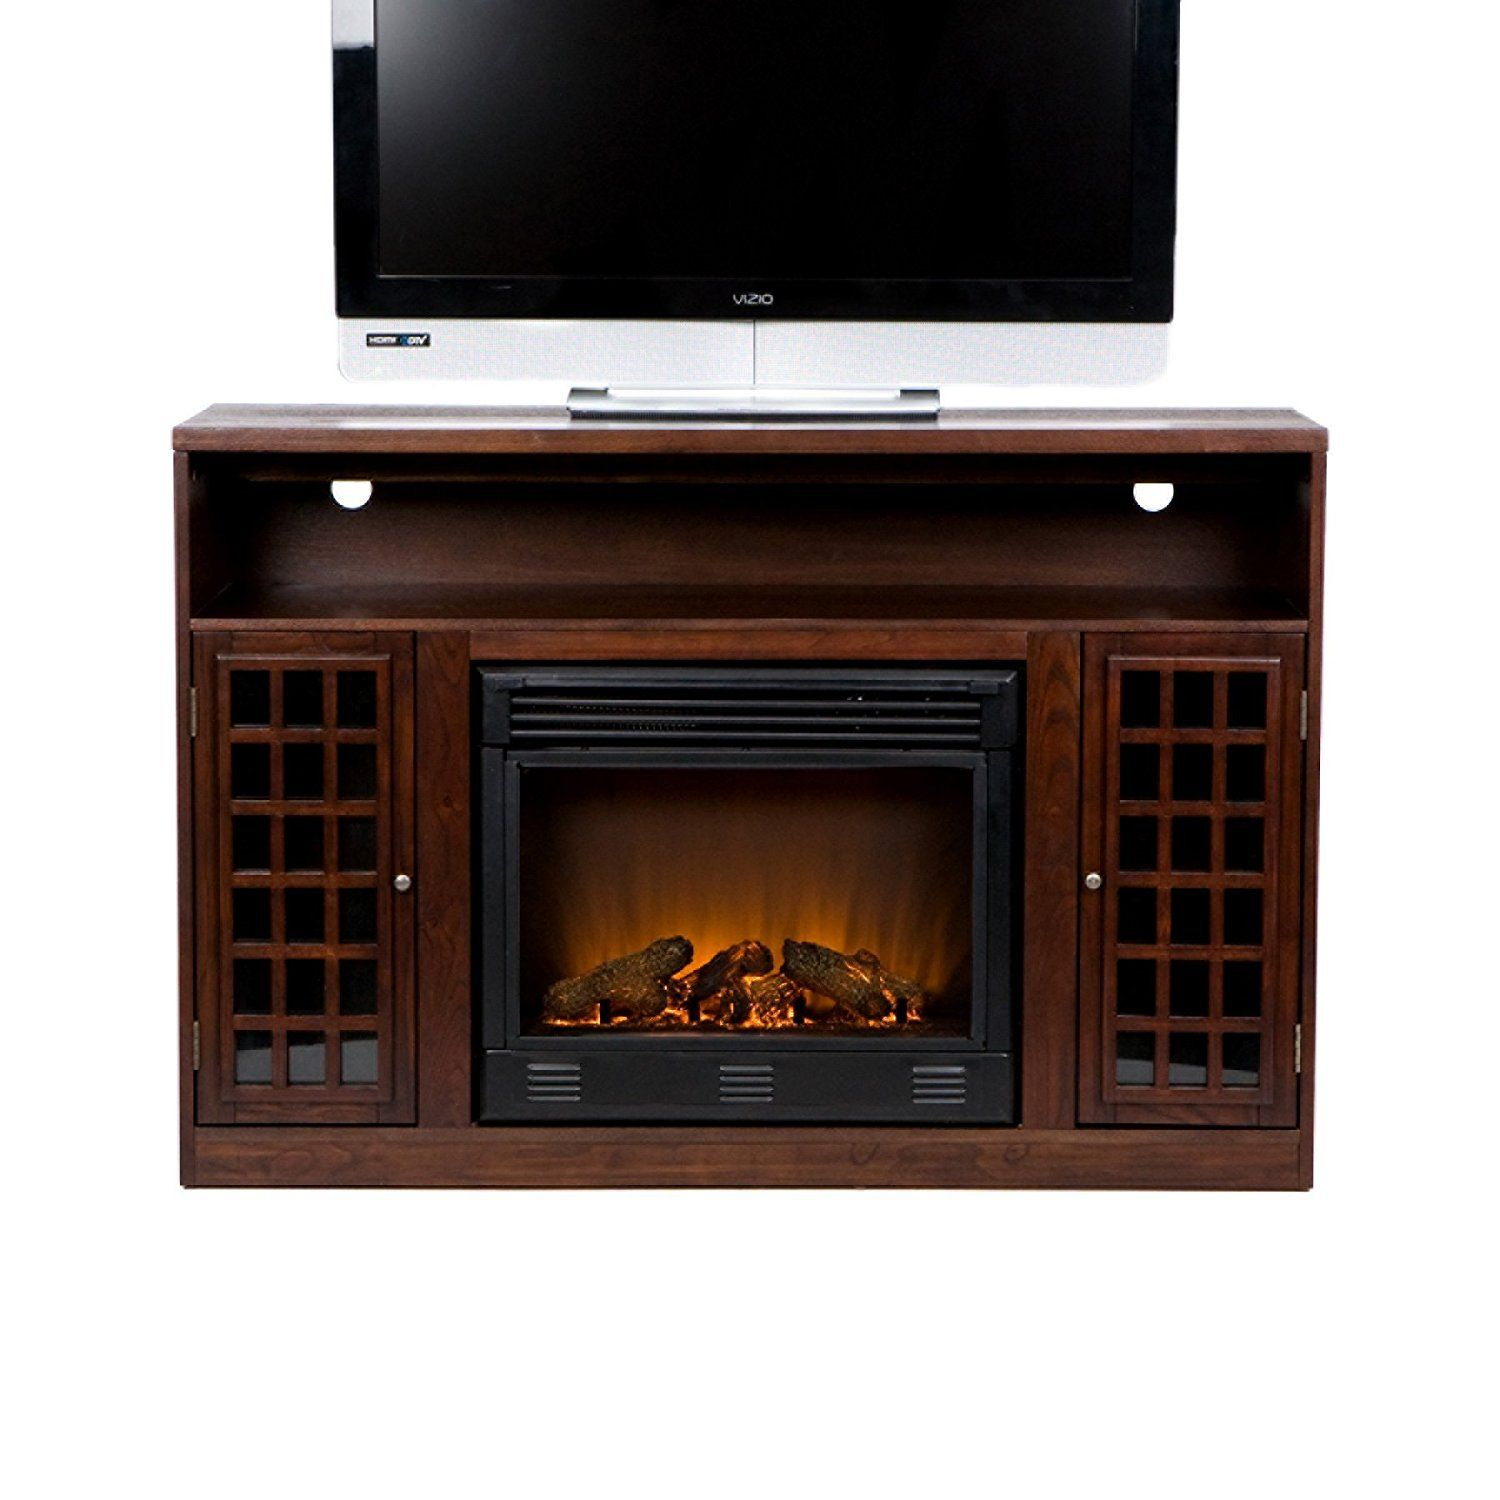 c3adde8c8442f820a6ab4826fbe1bf9a - Better Homes And Gardens Ashwood Road Media Fireplace